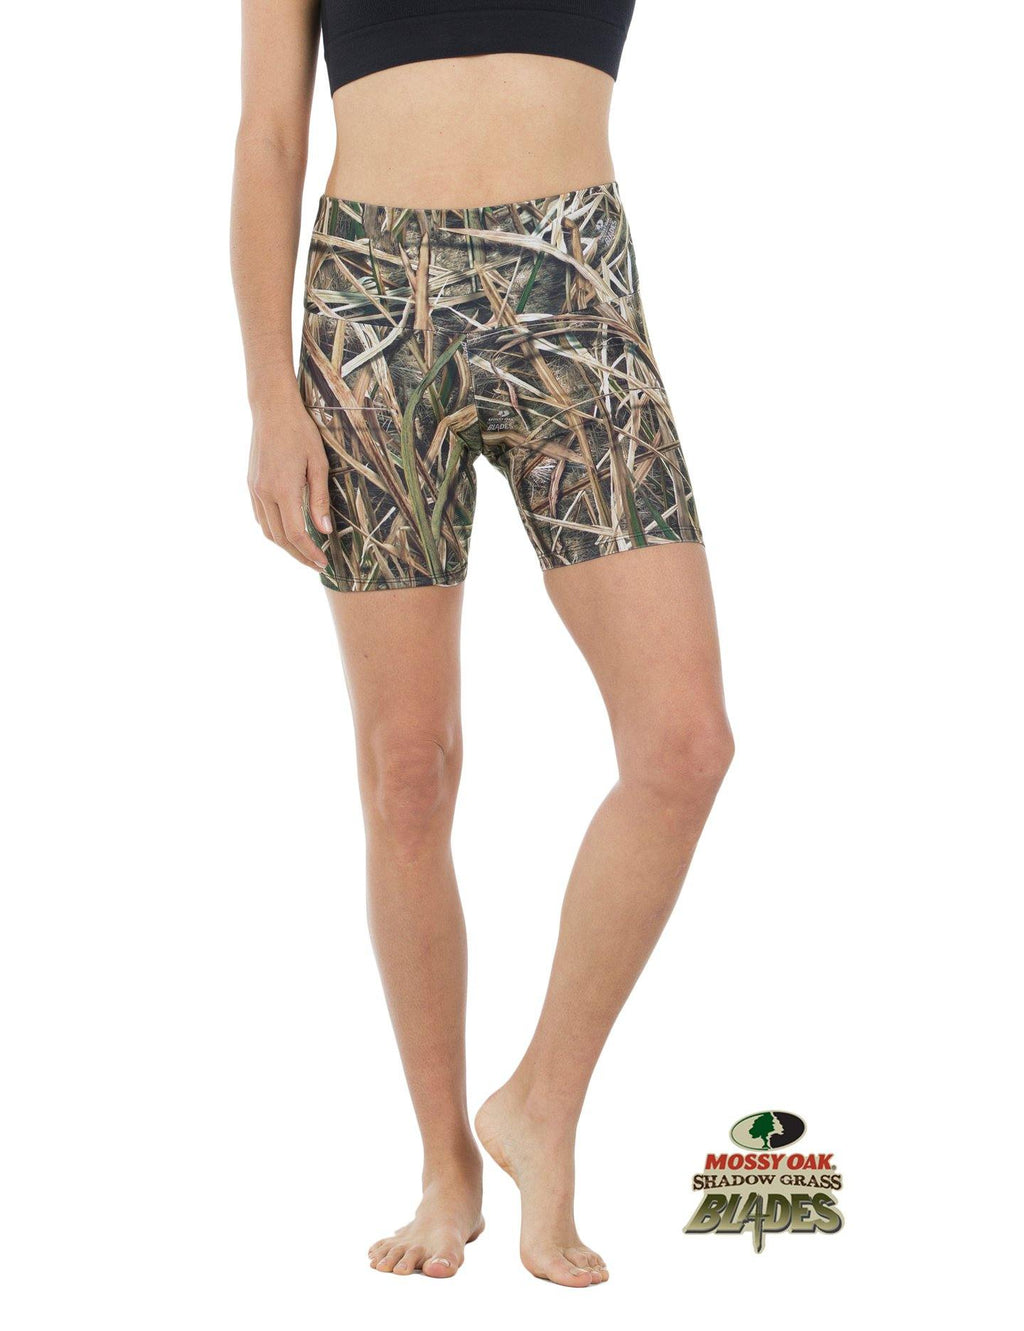 Apsara Shorts High Waist, Mossy Oak Shadow Grass Blades